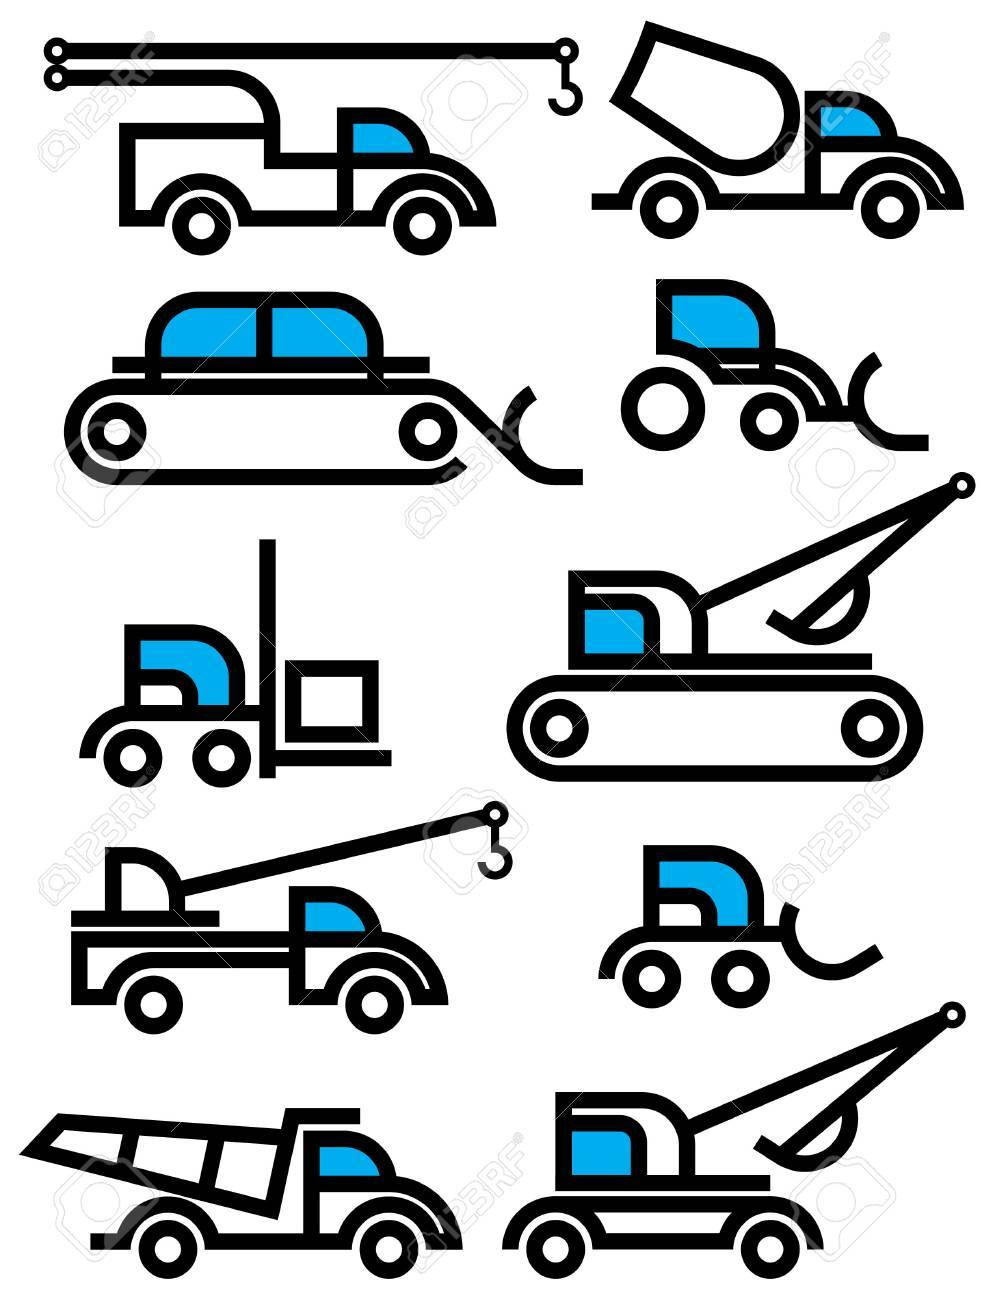 consrtuction equipment signs Stock Vector - 7493846